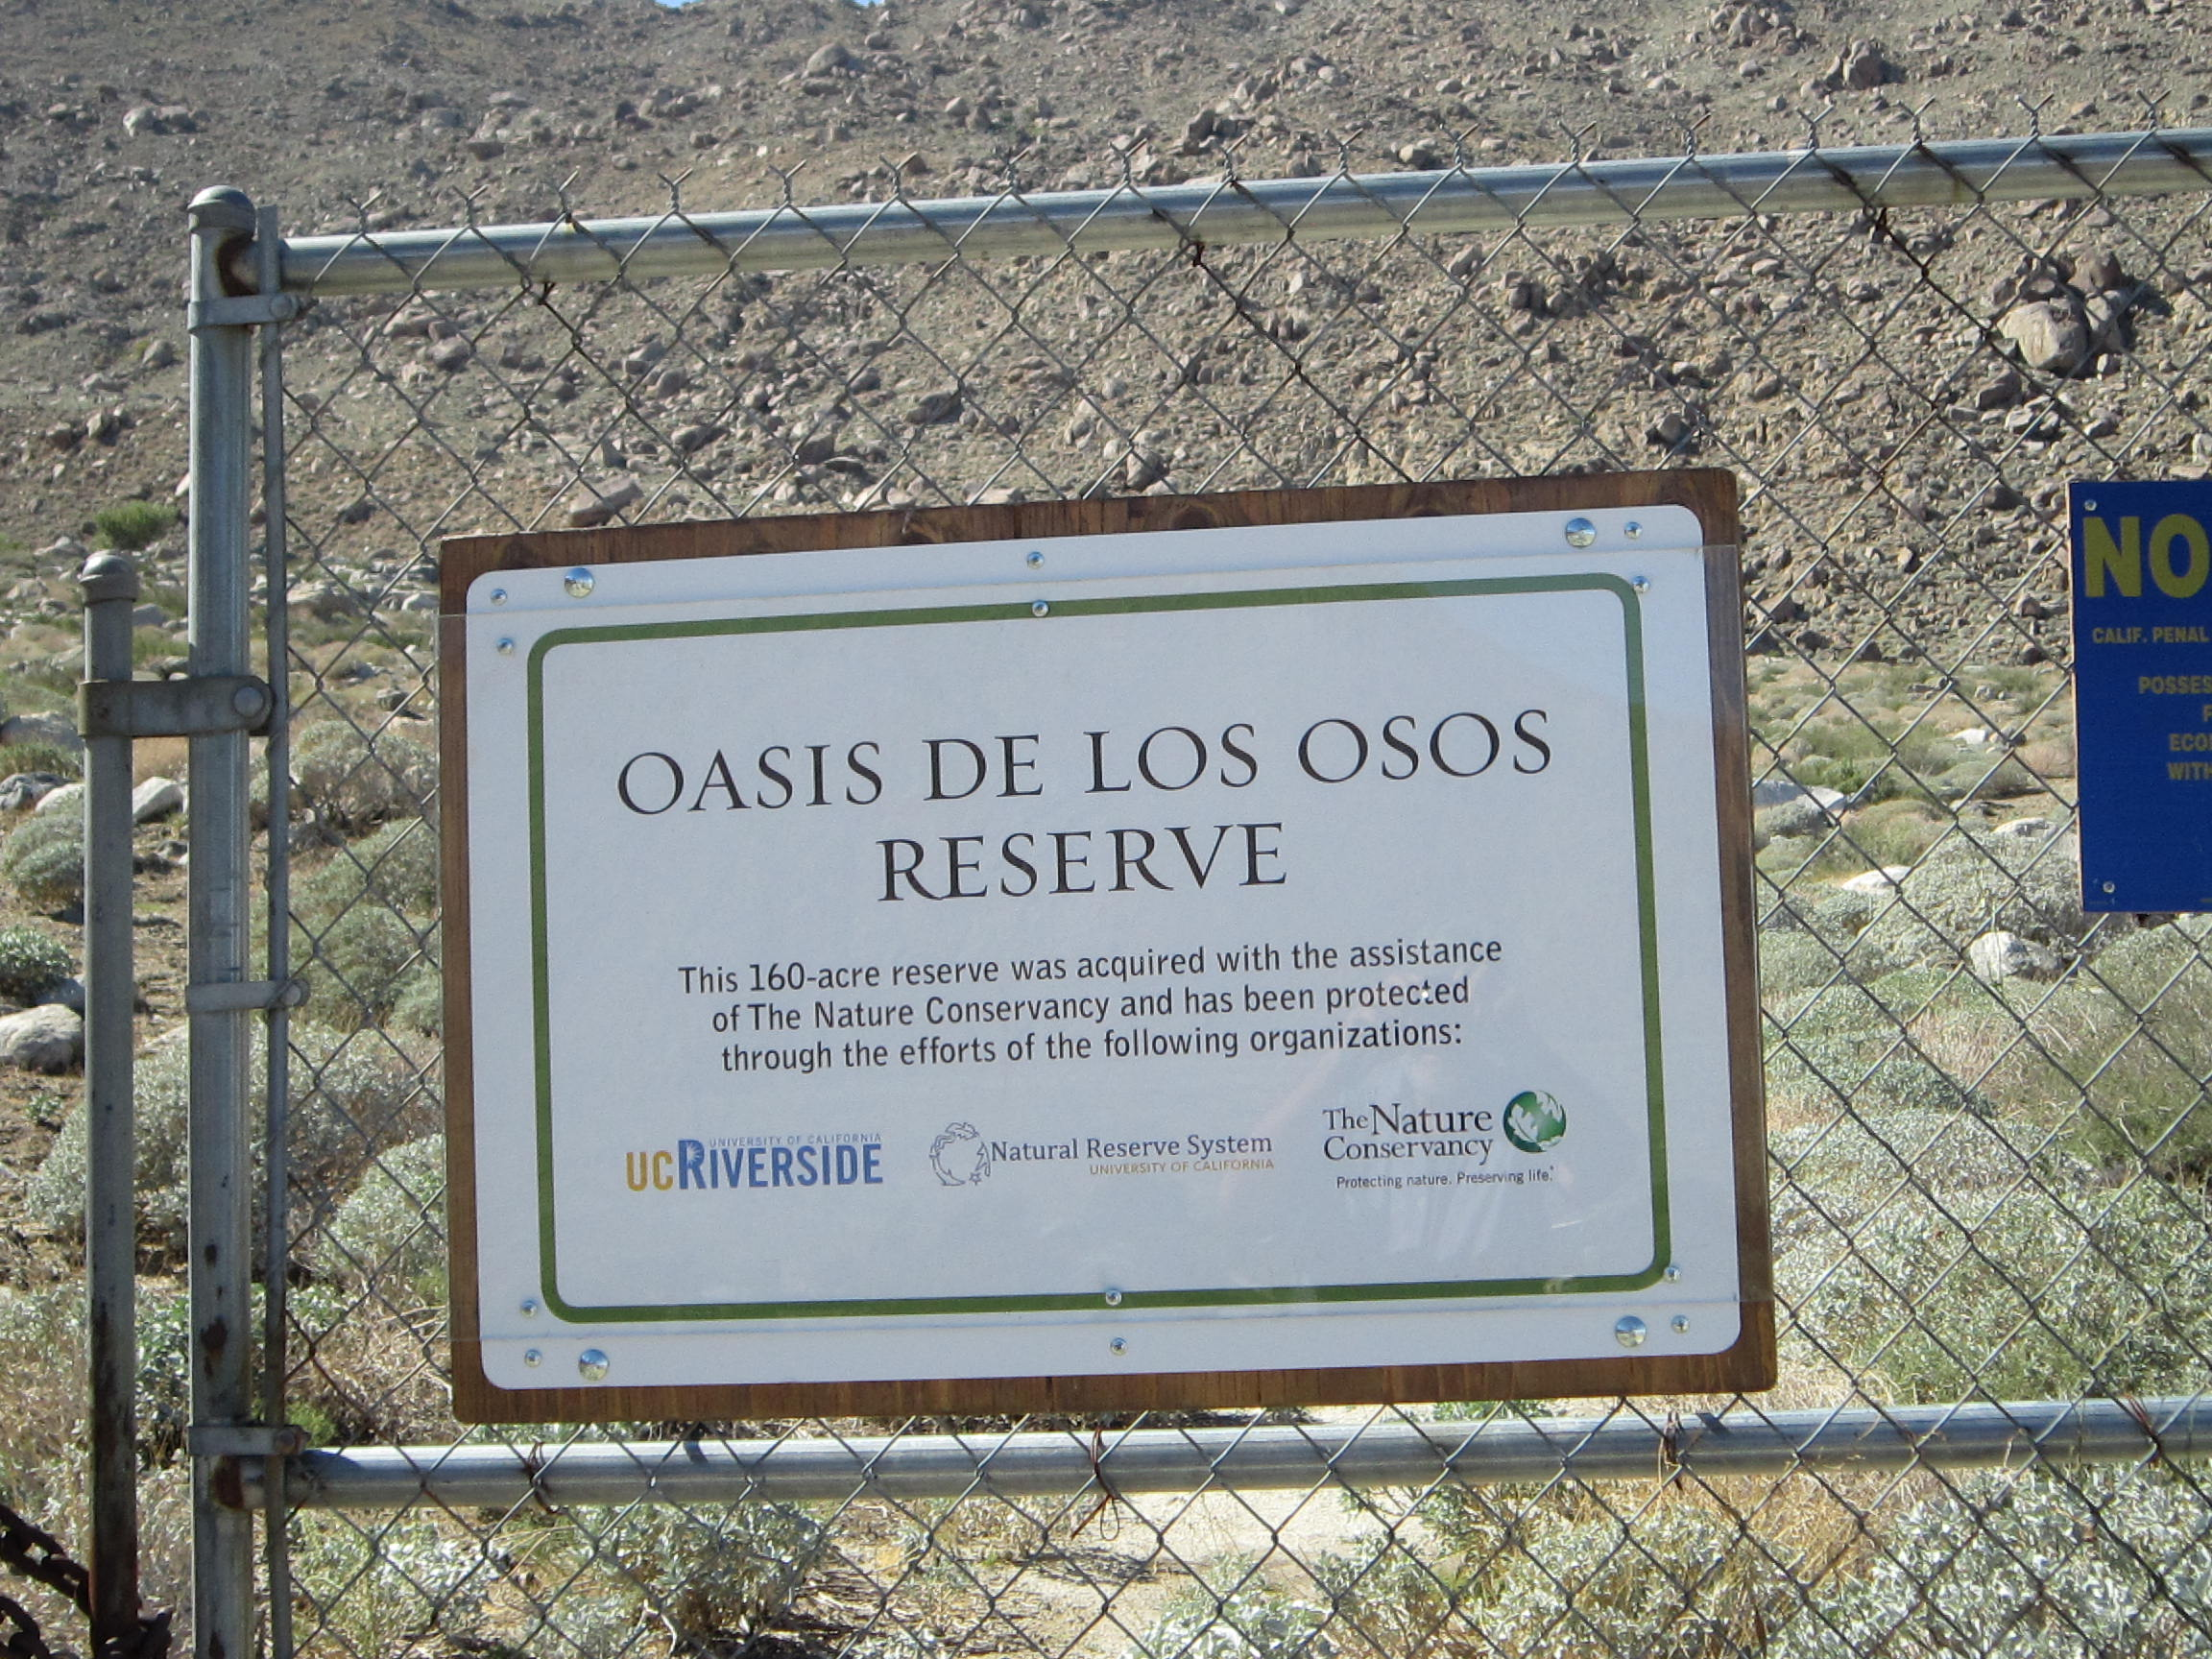 Oasis de los Osos Reserve was leased to the Natural Reserve System from The Nature Conservancy